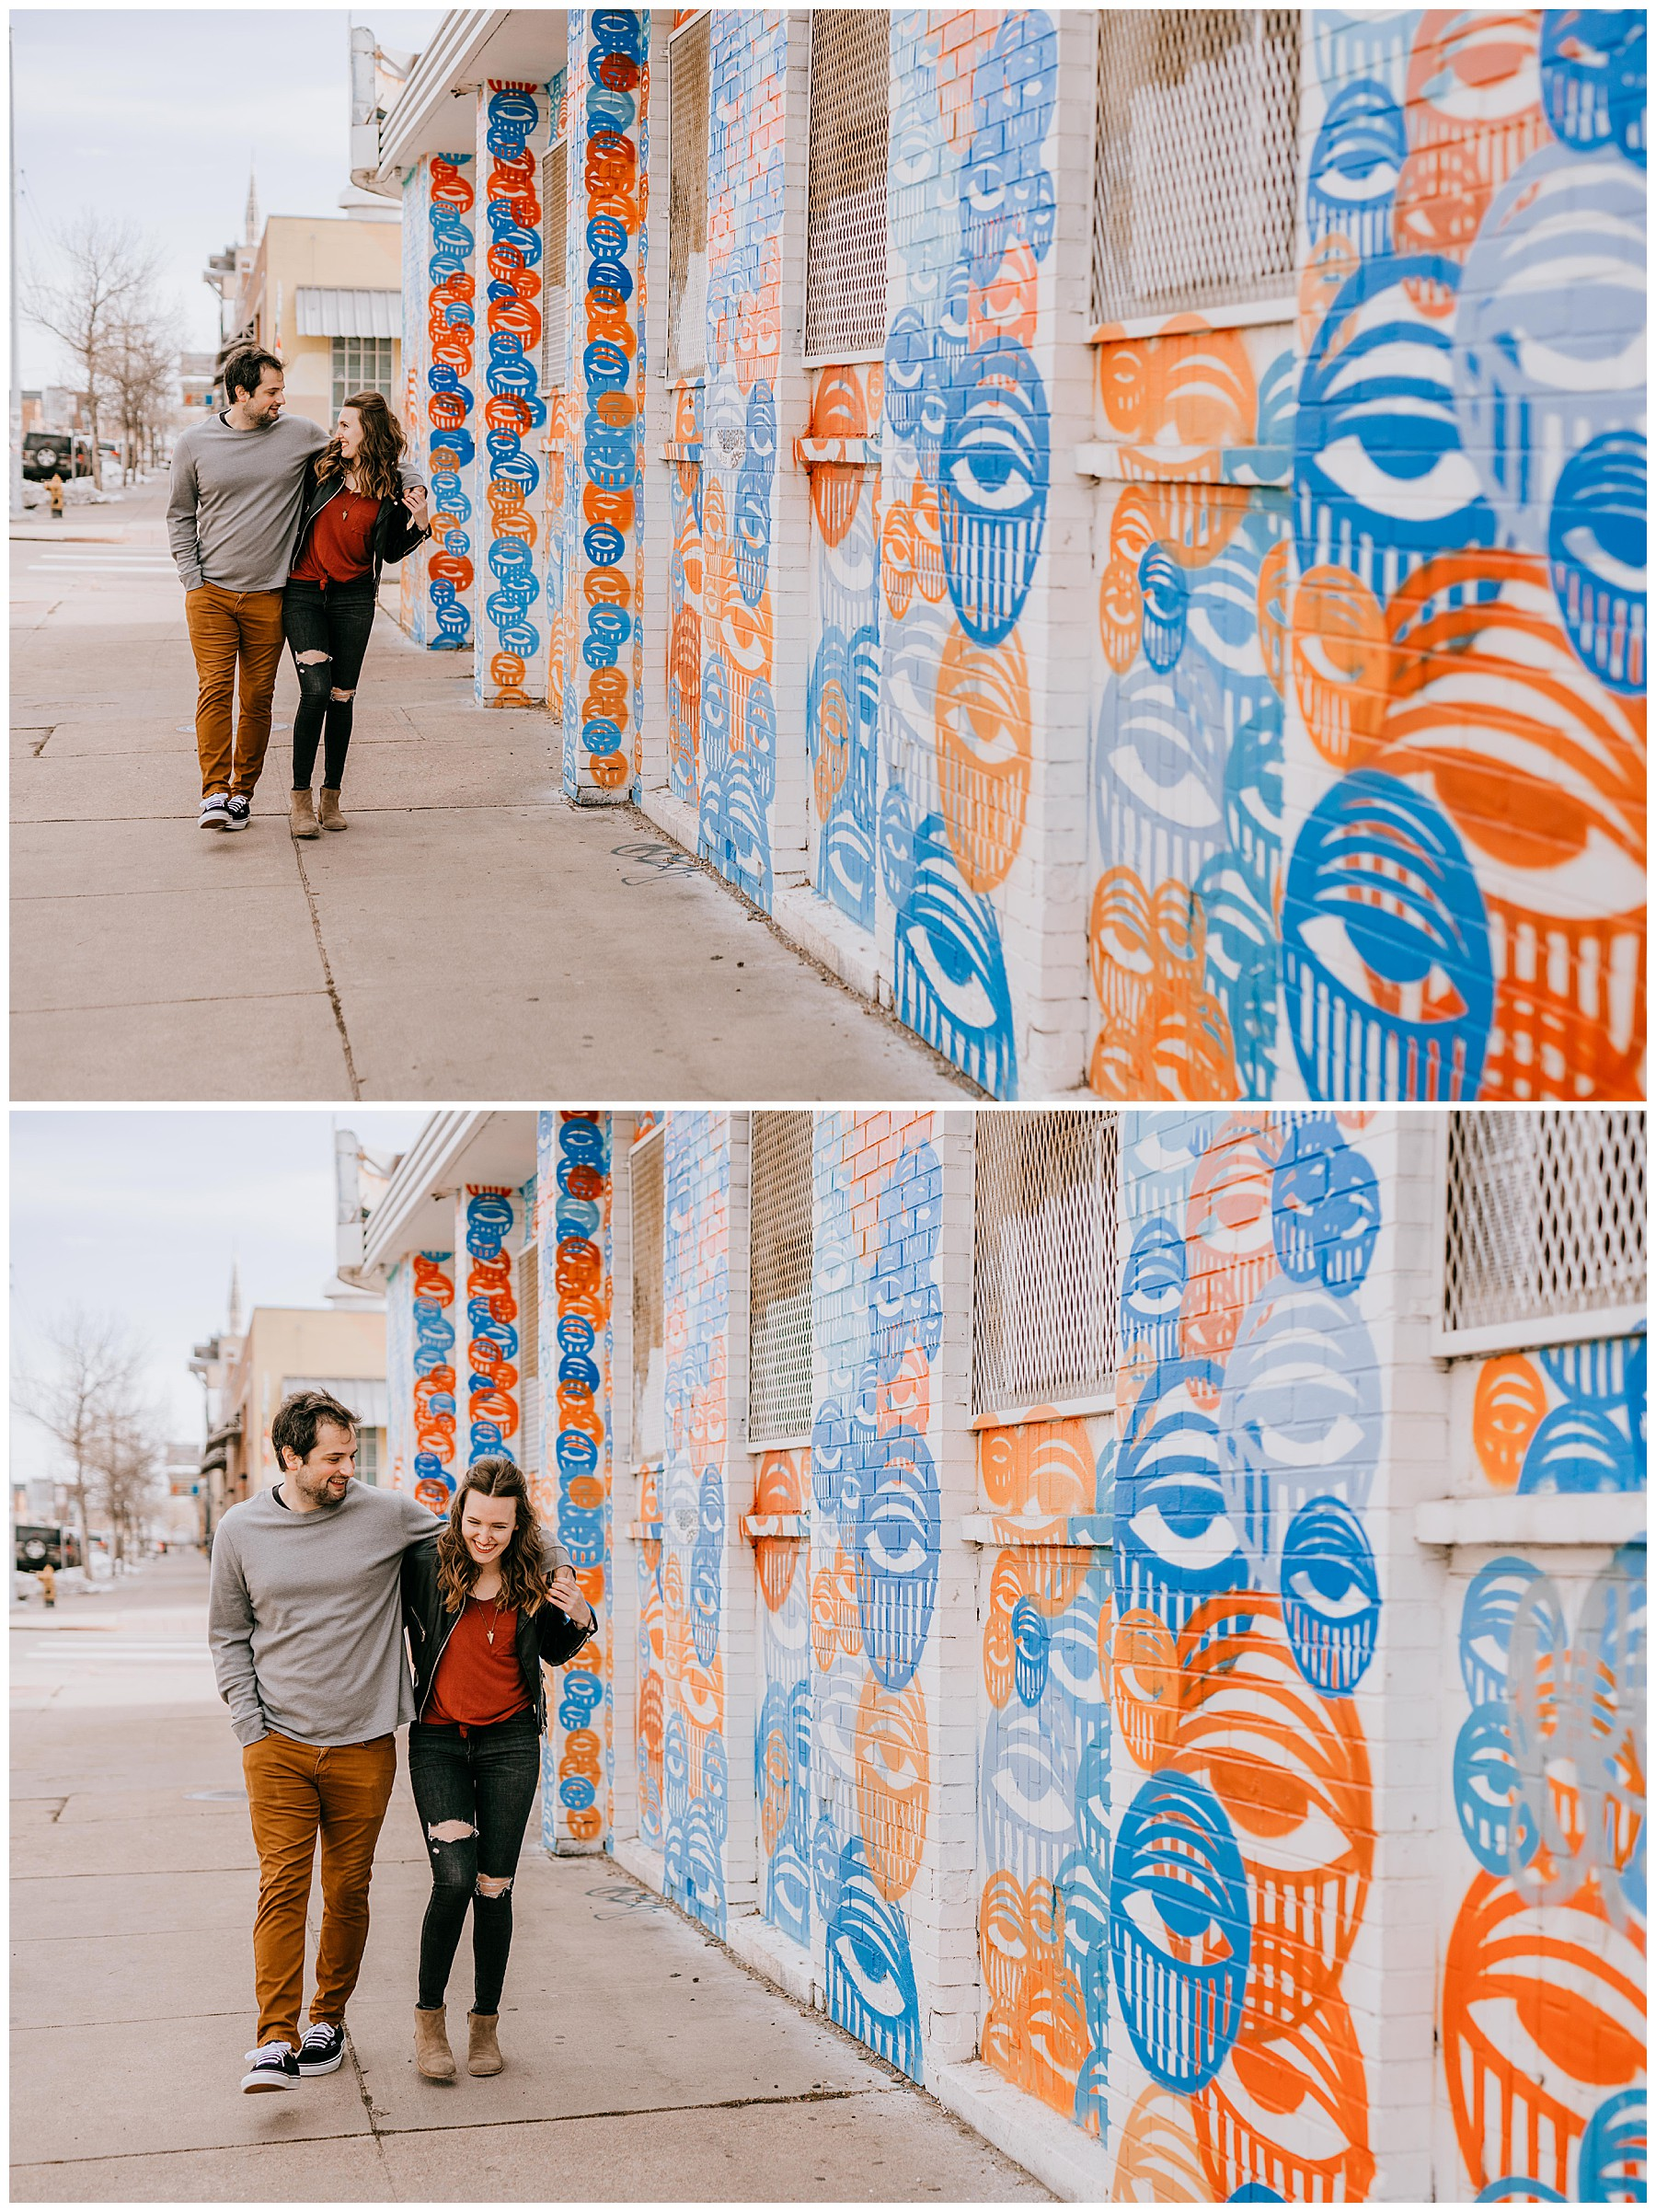 Jozie & Sam Engagement Session RiNo District Denver CO 40